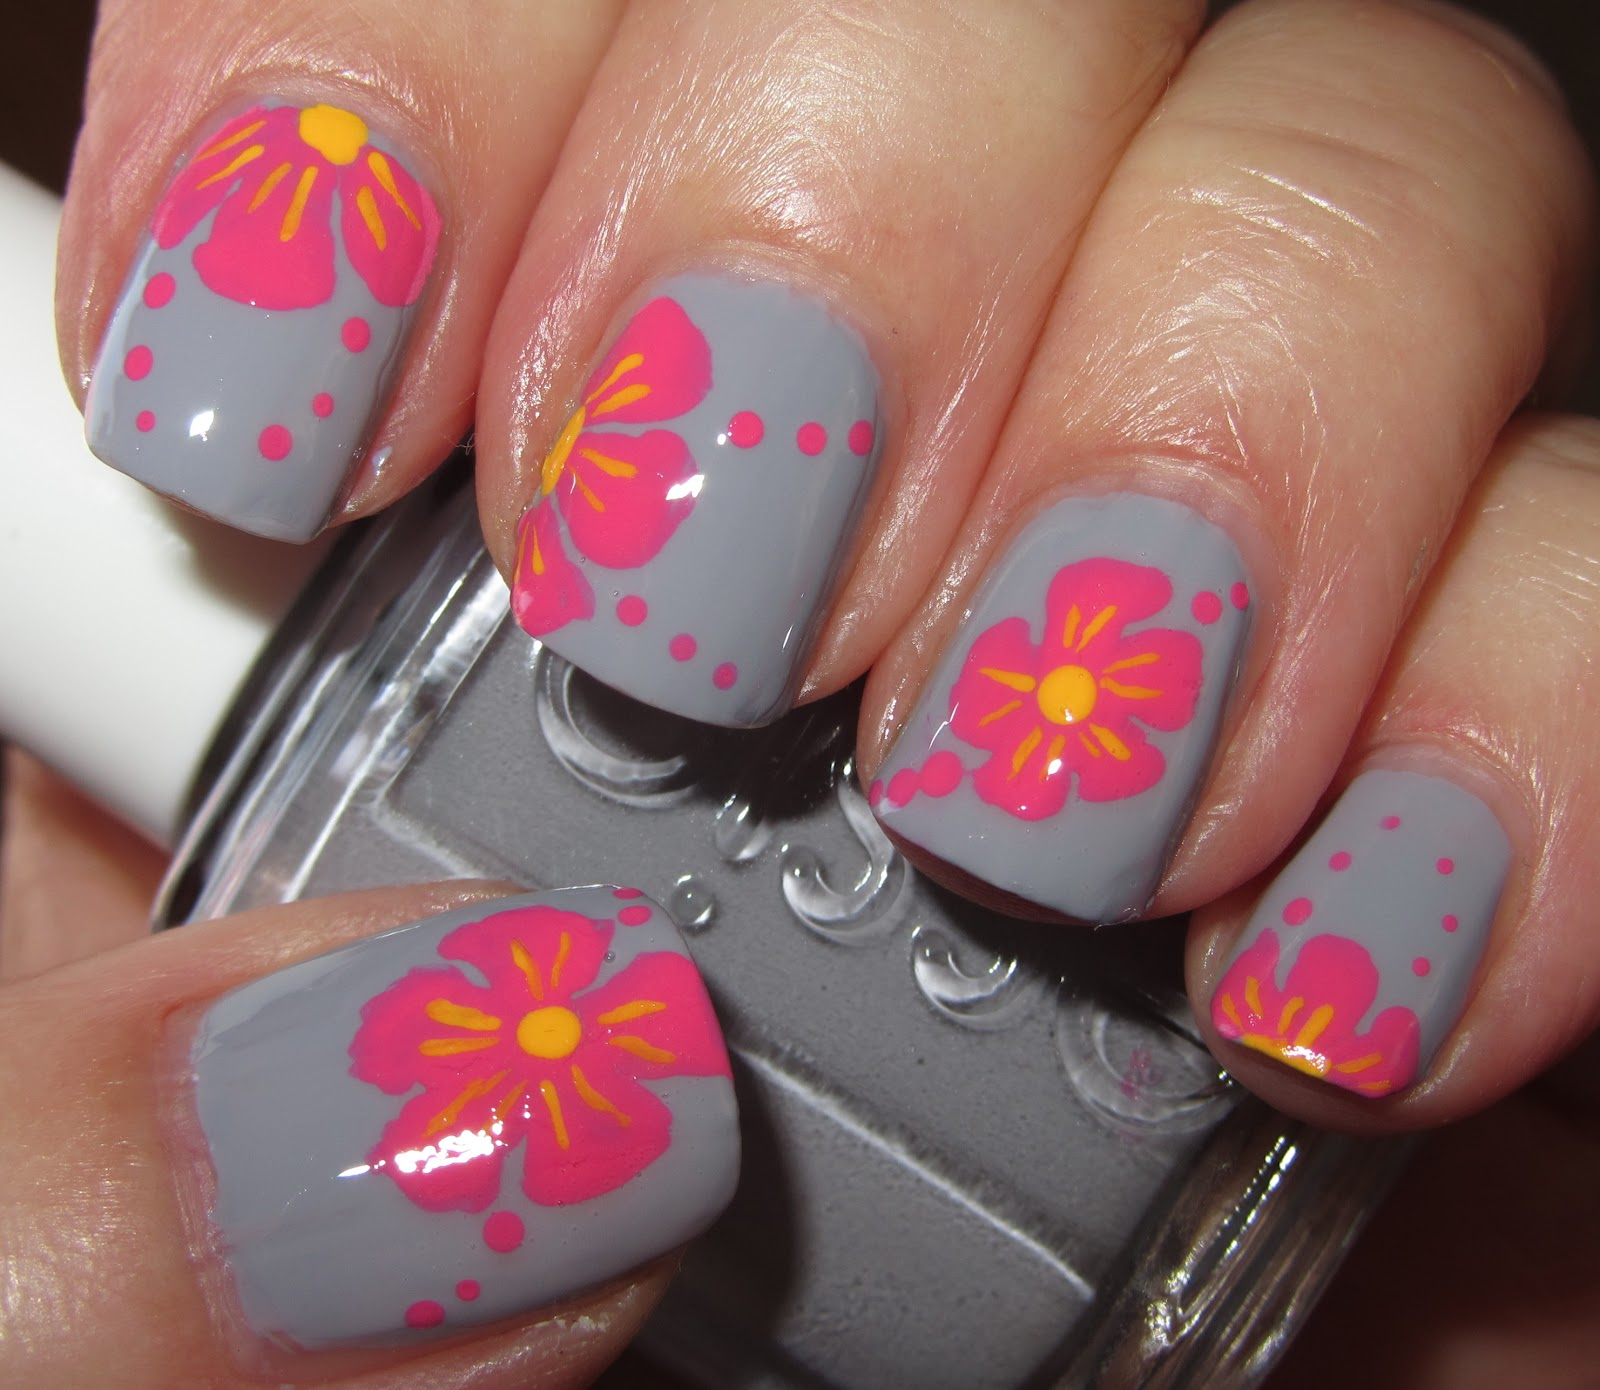 Marias Nail Art And Polish Blog: Tropical Pink Flowers On Grey